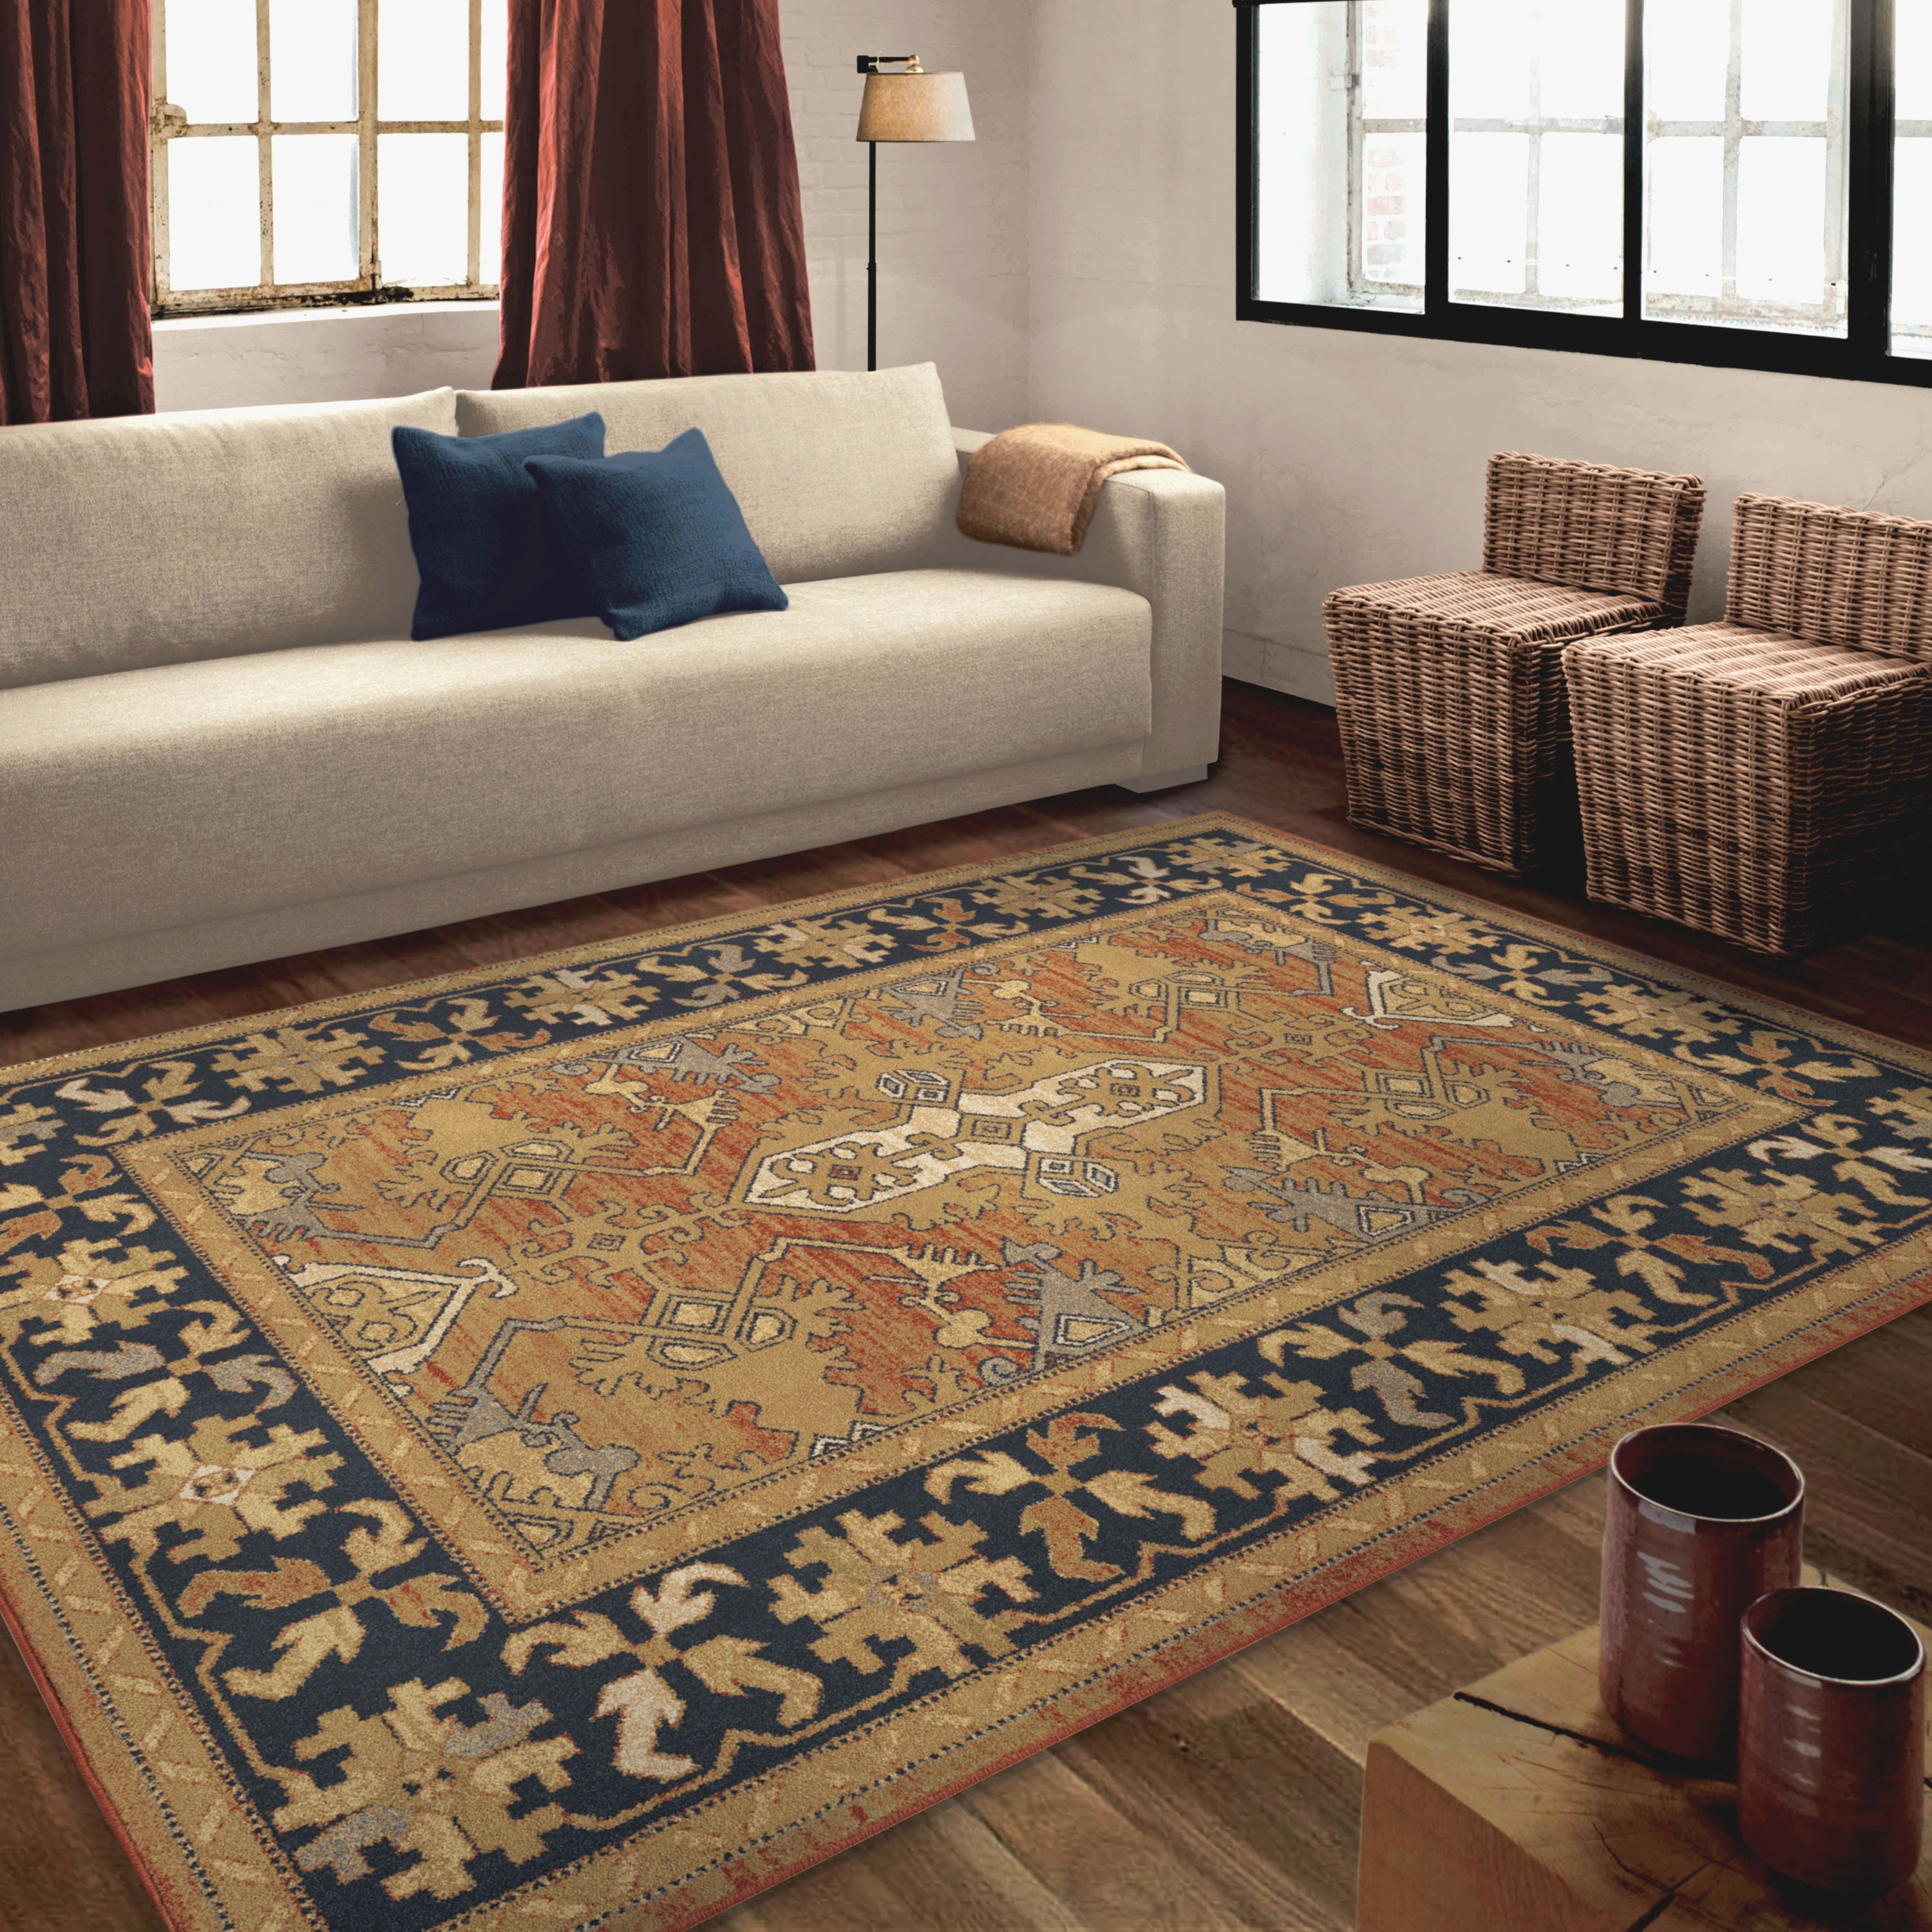 Cute Rugs for Bedroom Inspirational 13 Fashionable Carpet or Hardwood Floors In Living Room